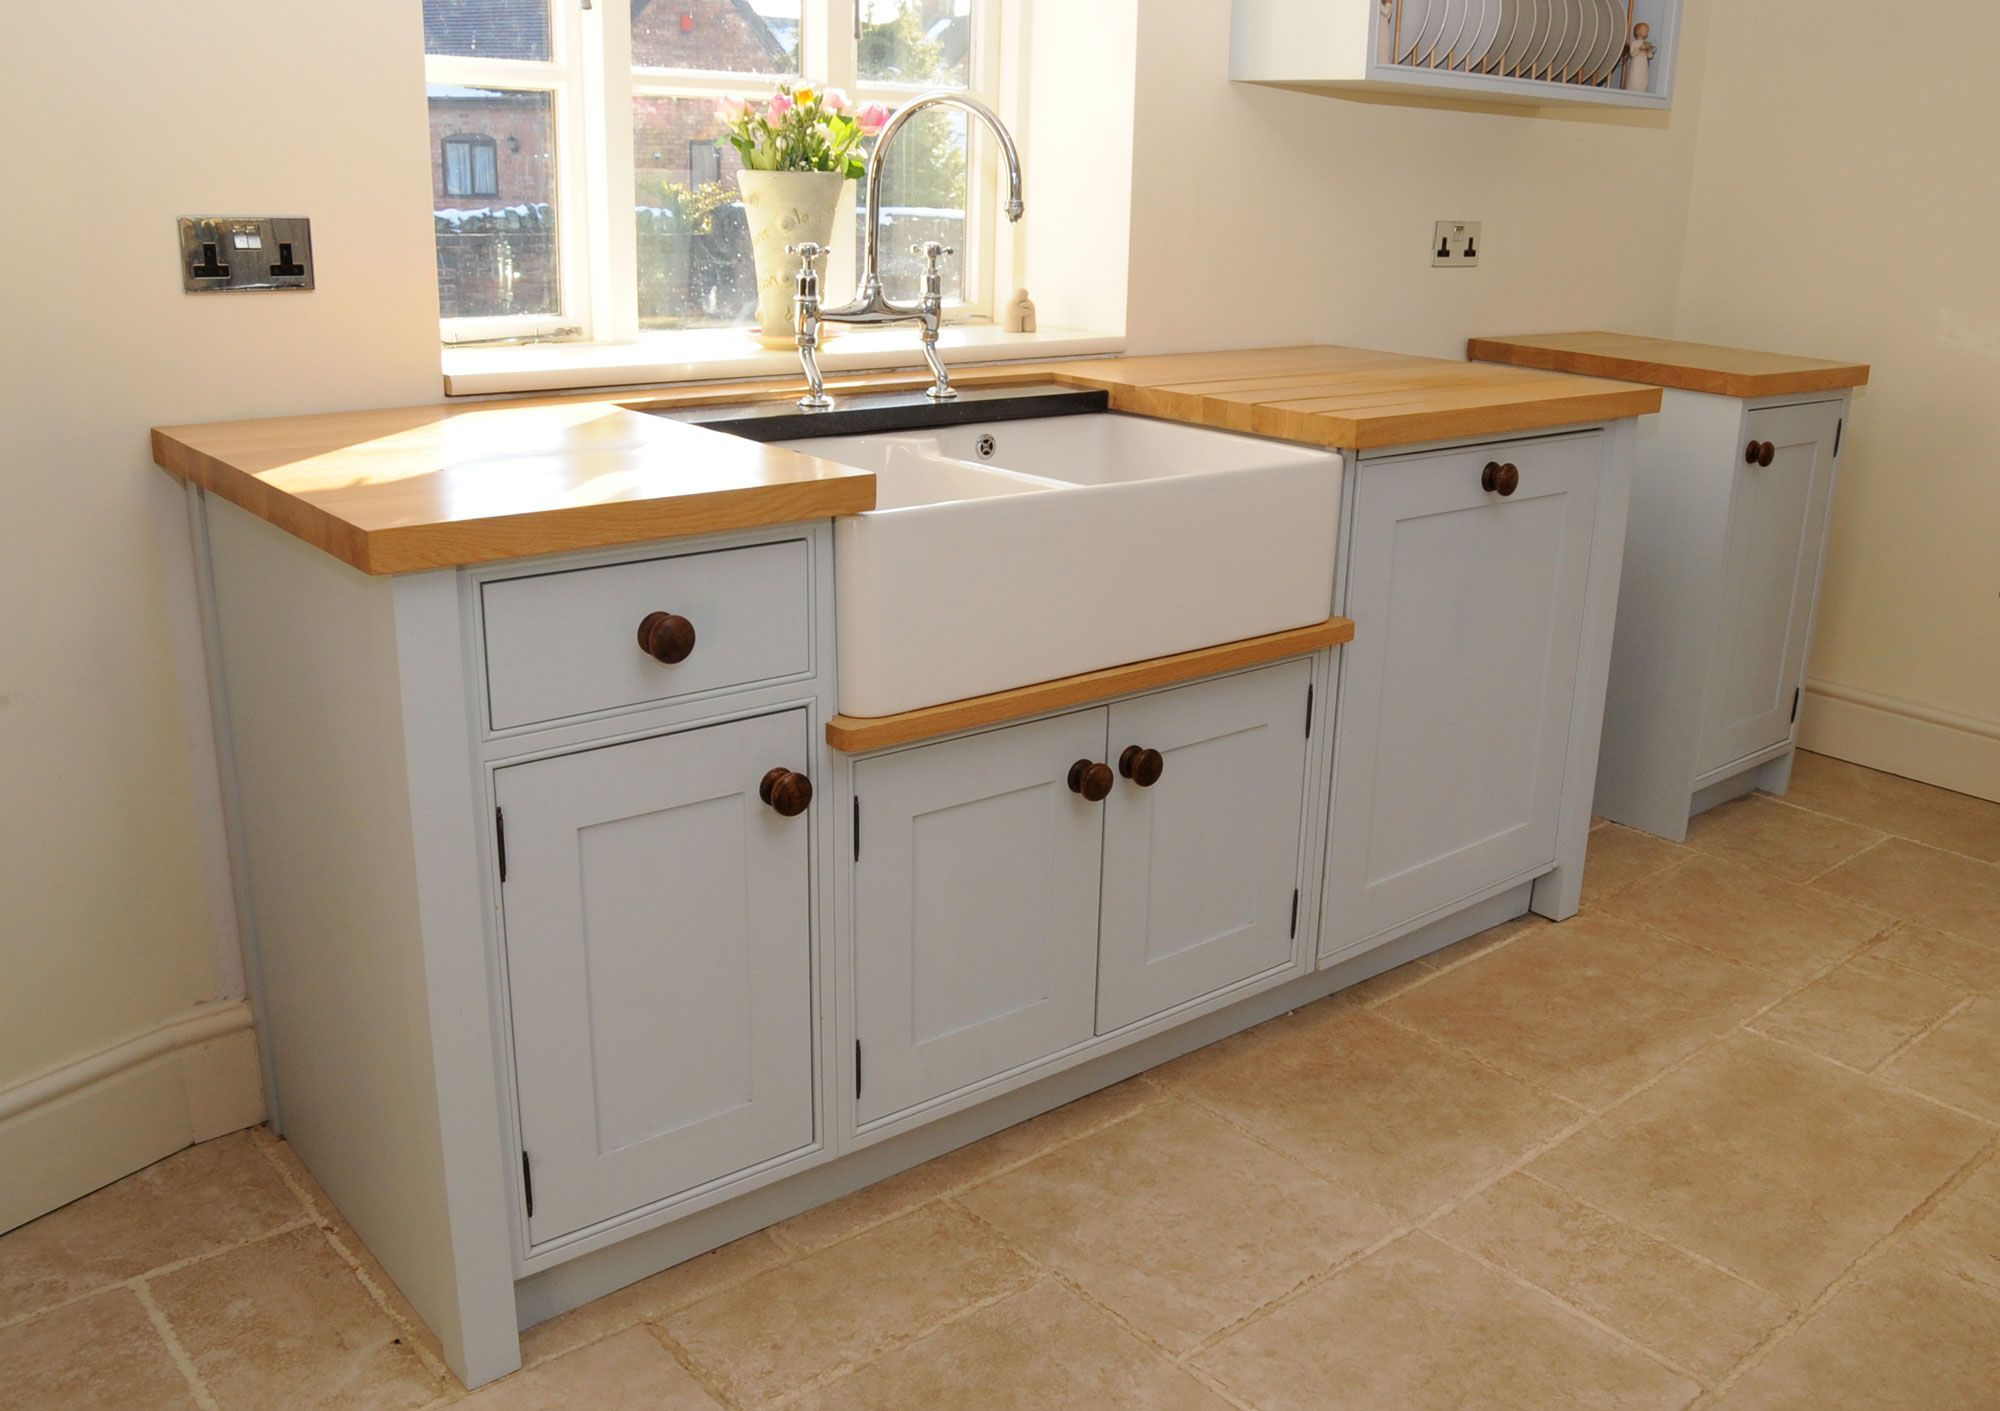 Pin By Caroline Holt On Furniture Free Standing Kitchen Units Free Standing Kitchen Sink Freestanding Kitchen